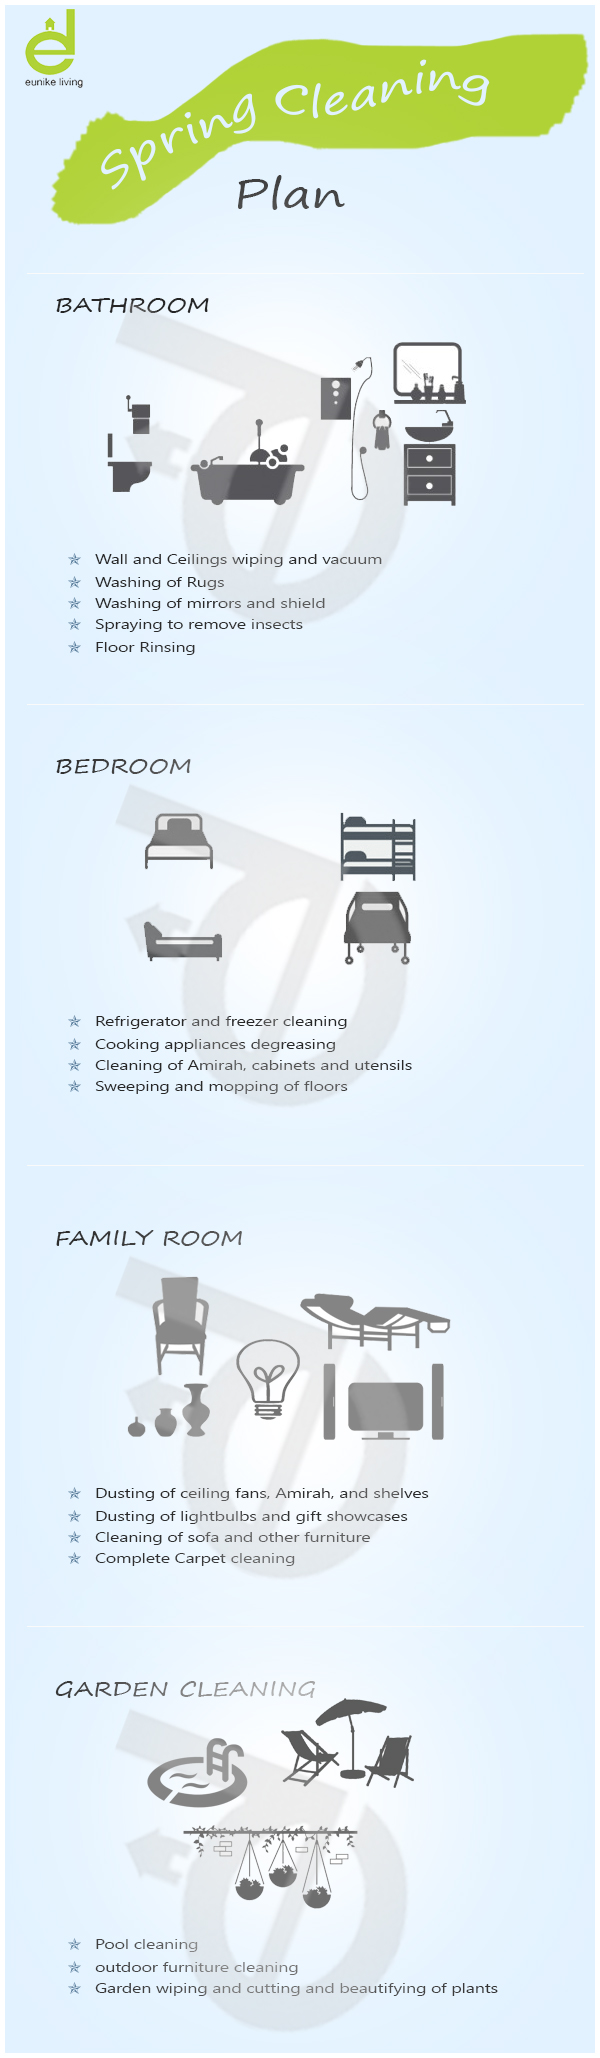 spring cleaning services singapore